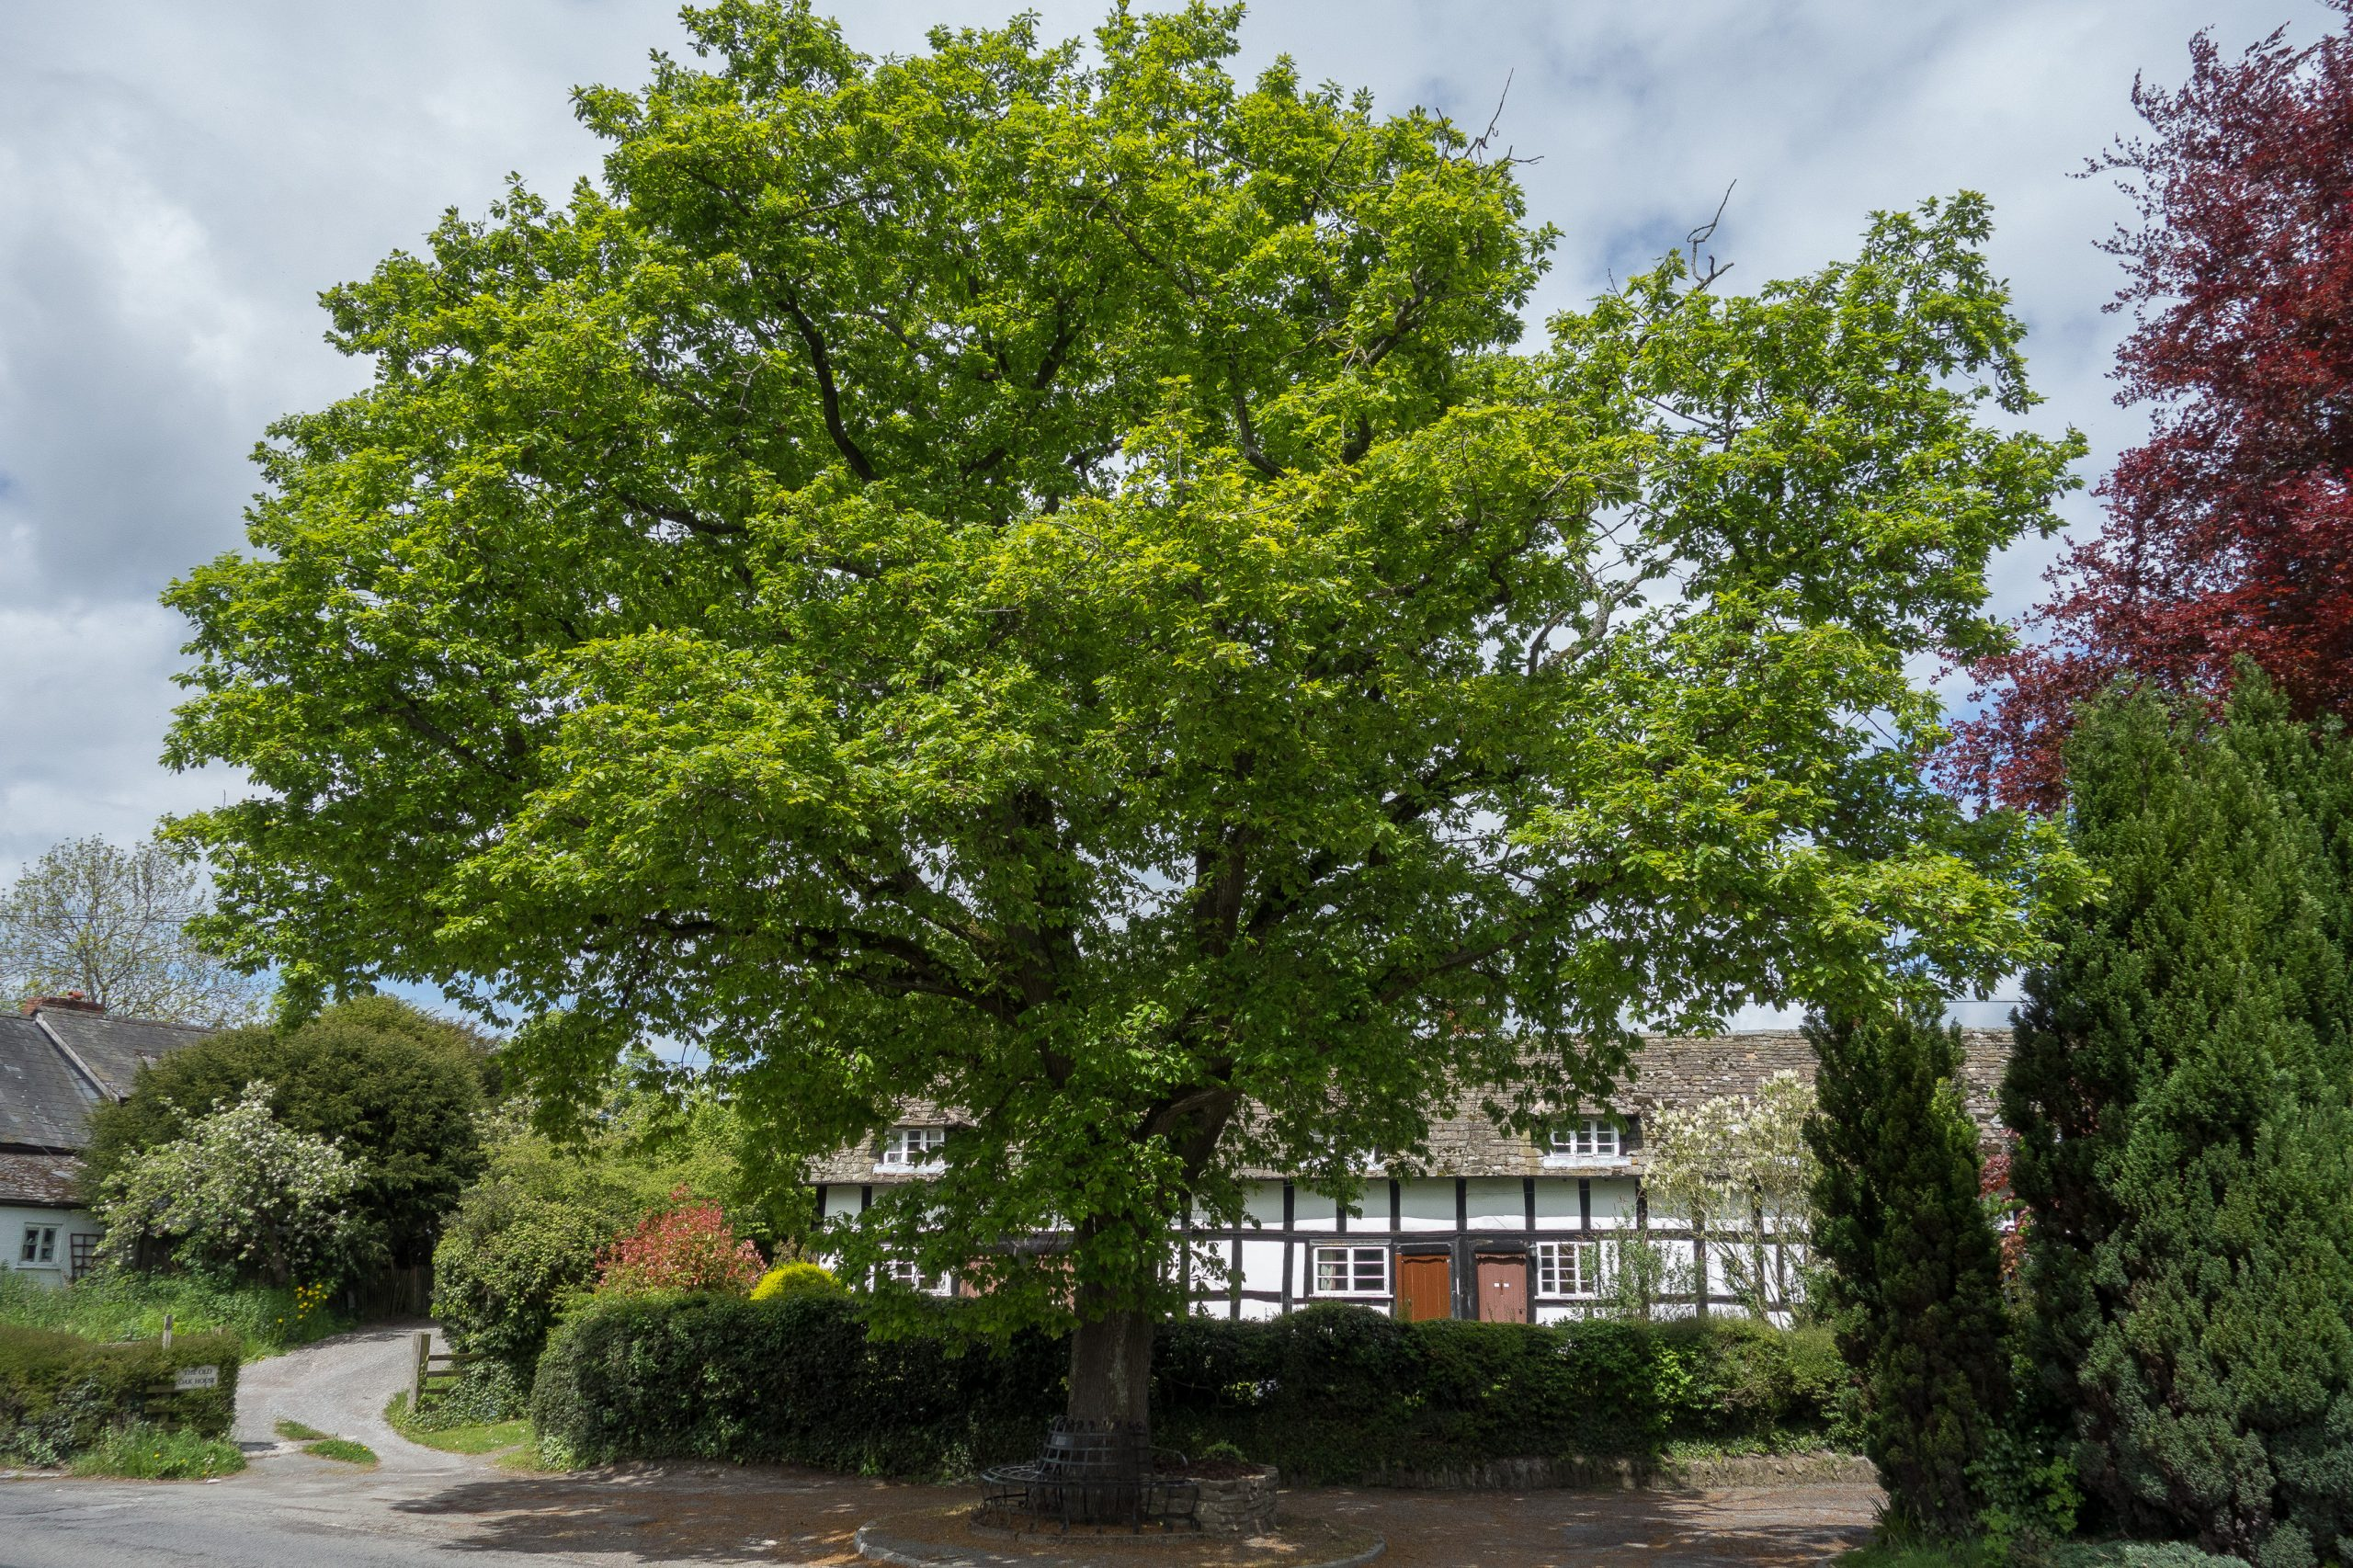 Oak tree in Pembridge